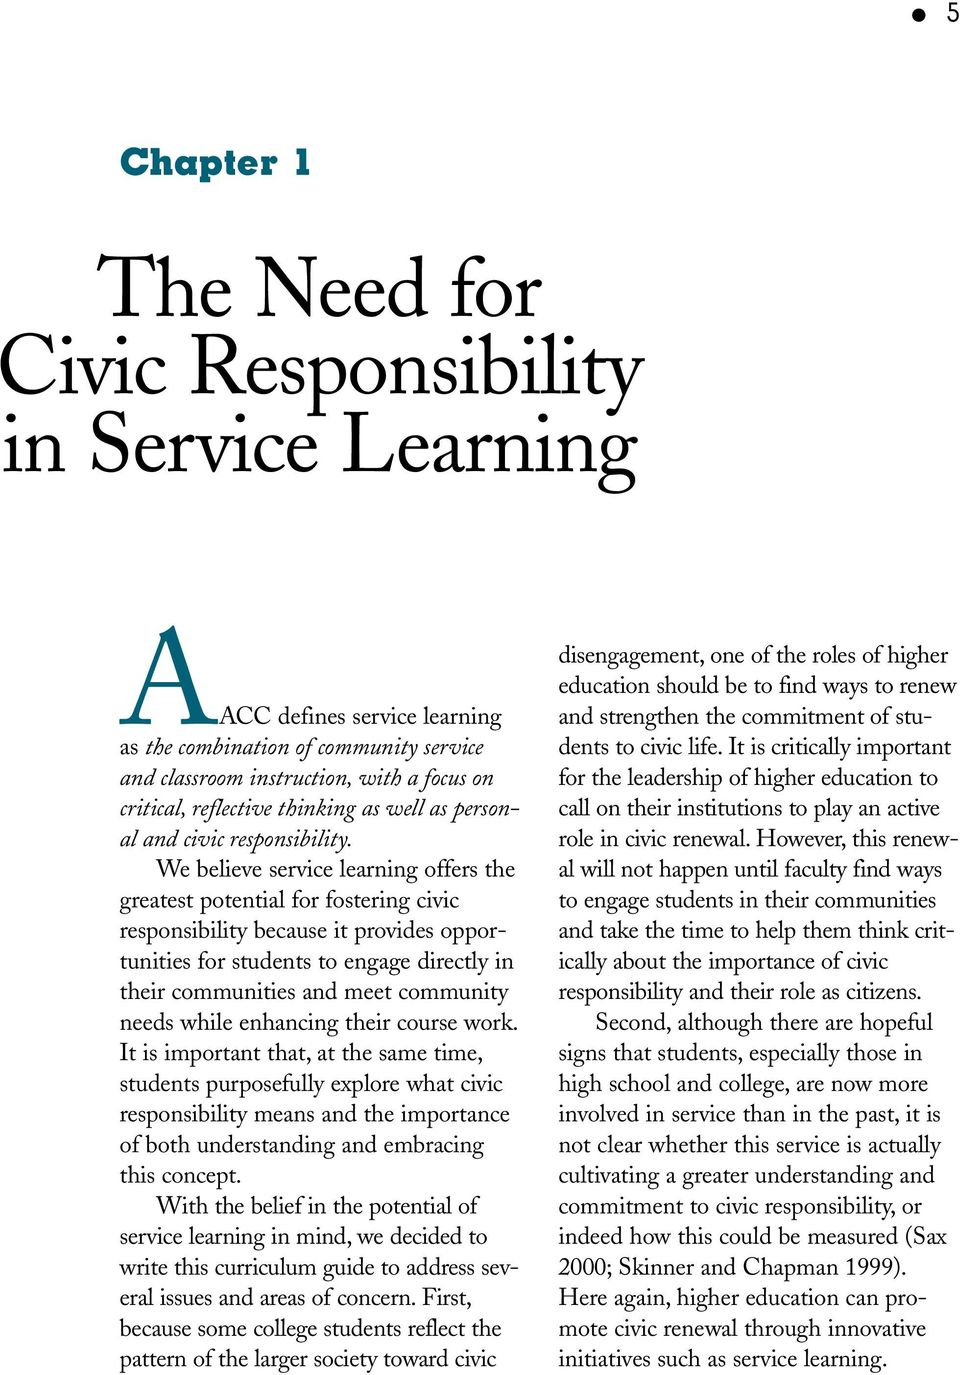 We believe service learning offers the greatest potential for fostering civic responsibility because it provides opportunities for students to engage directly in their communities and meet community